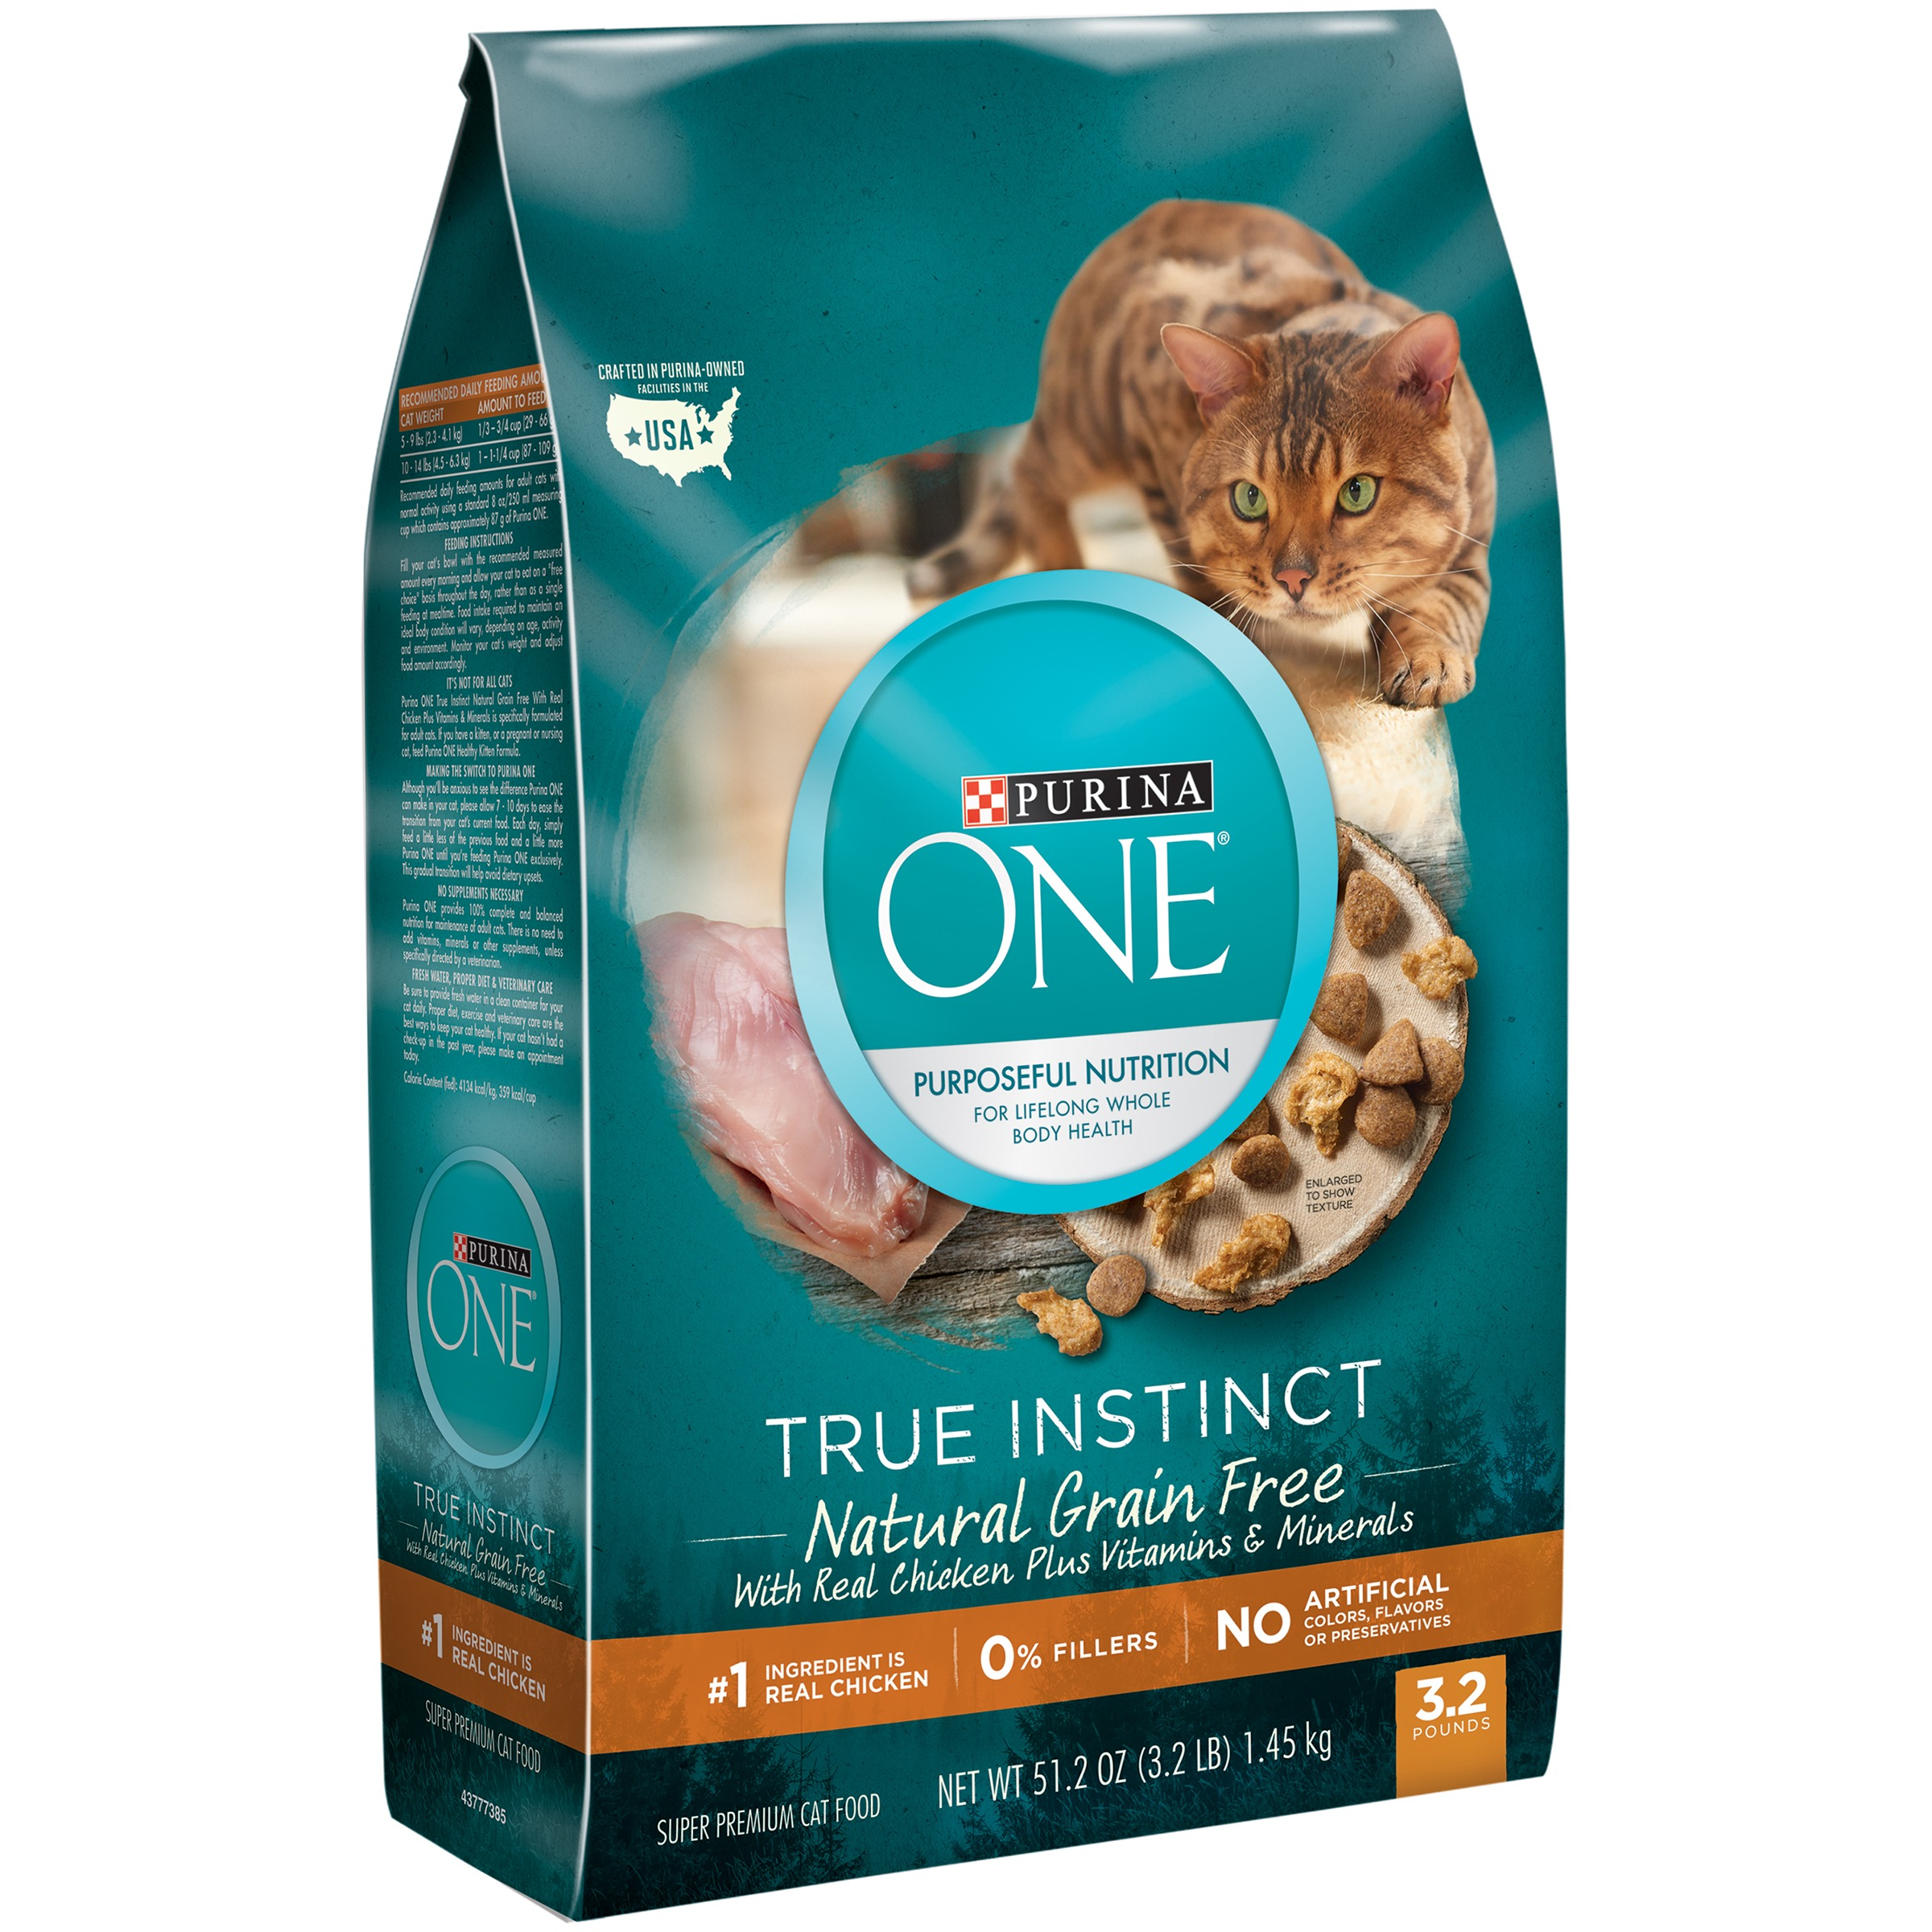 Purina ONE True Instinct Natural Grain Free With Real Chicken Plus Vitamins & Minerals Adult Dry Cat Food, 3.2 lb